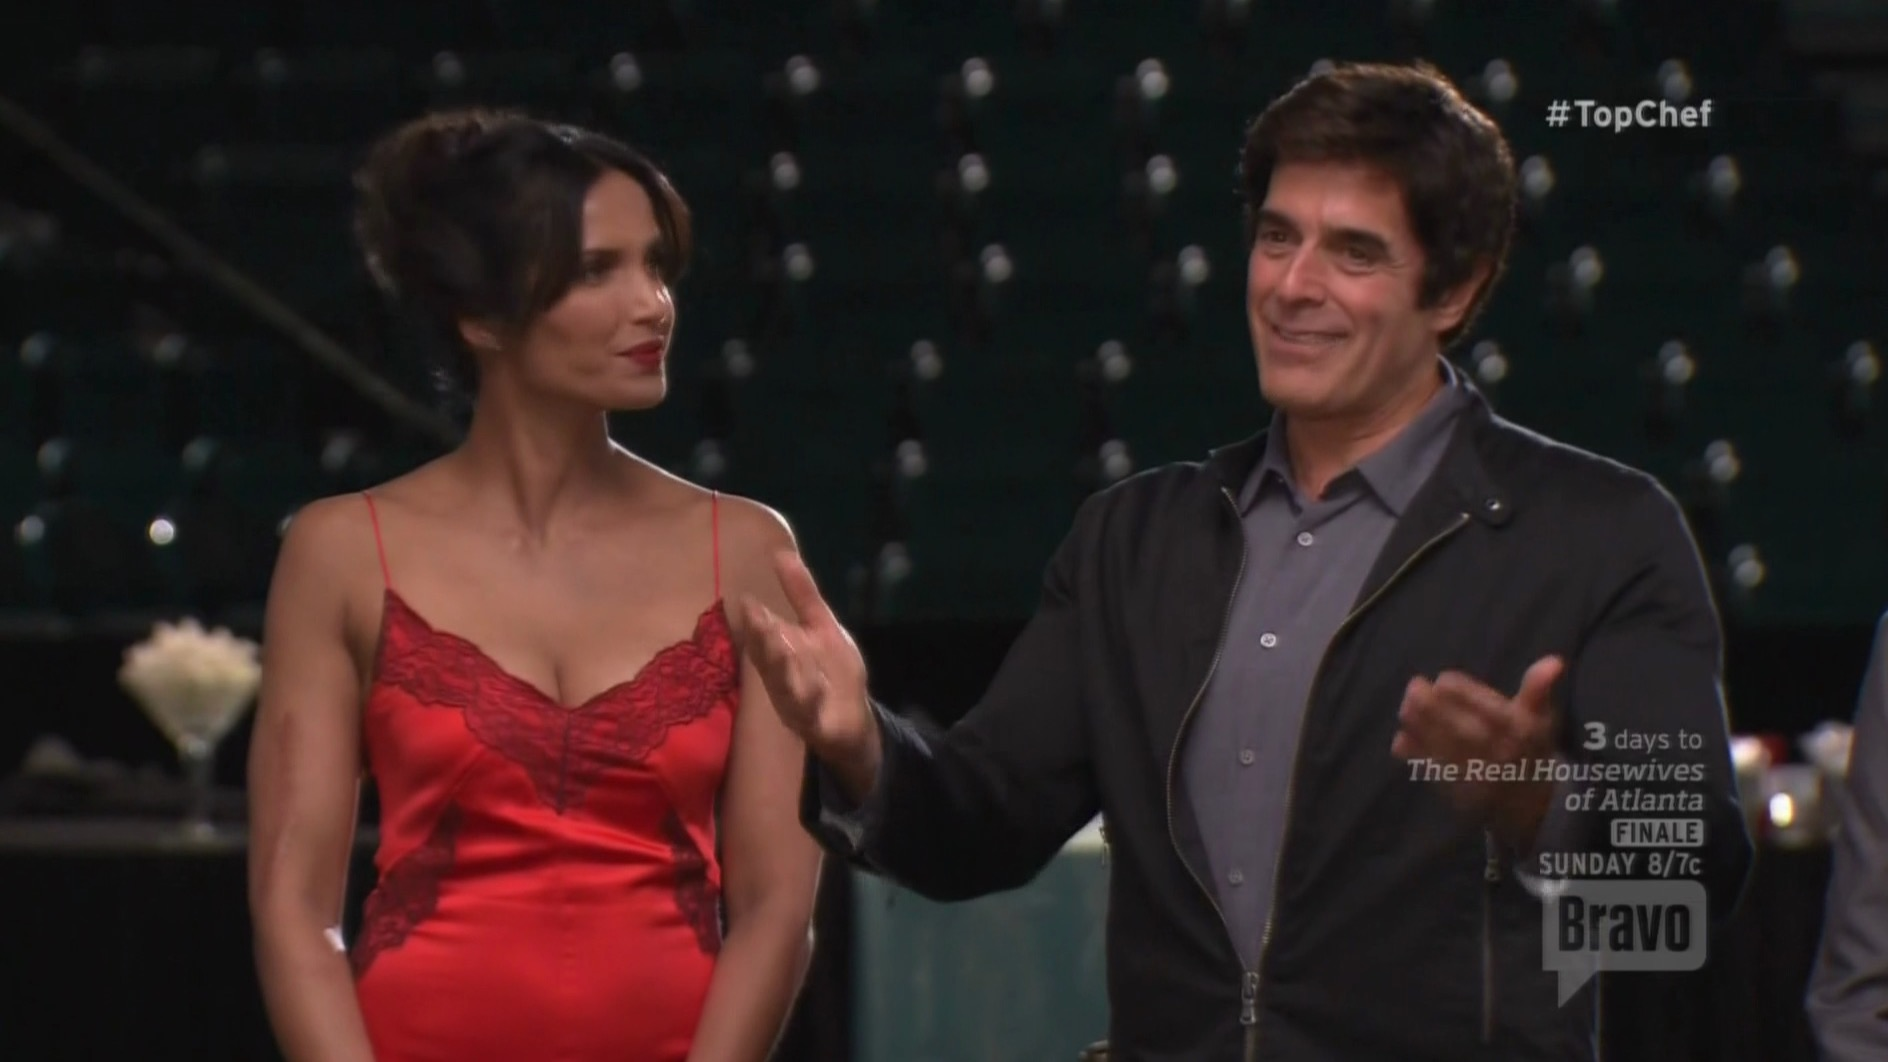 Top chef finale part 1 vegas magic and two chefs left topcheffinale part138 and in walks david copperfield m4hsunfo